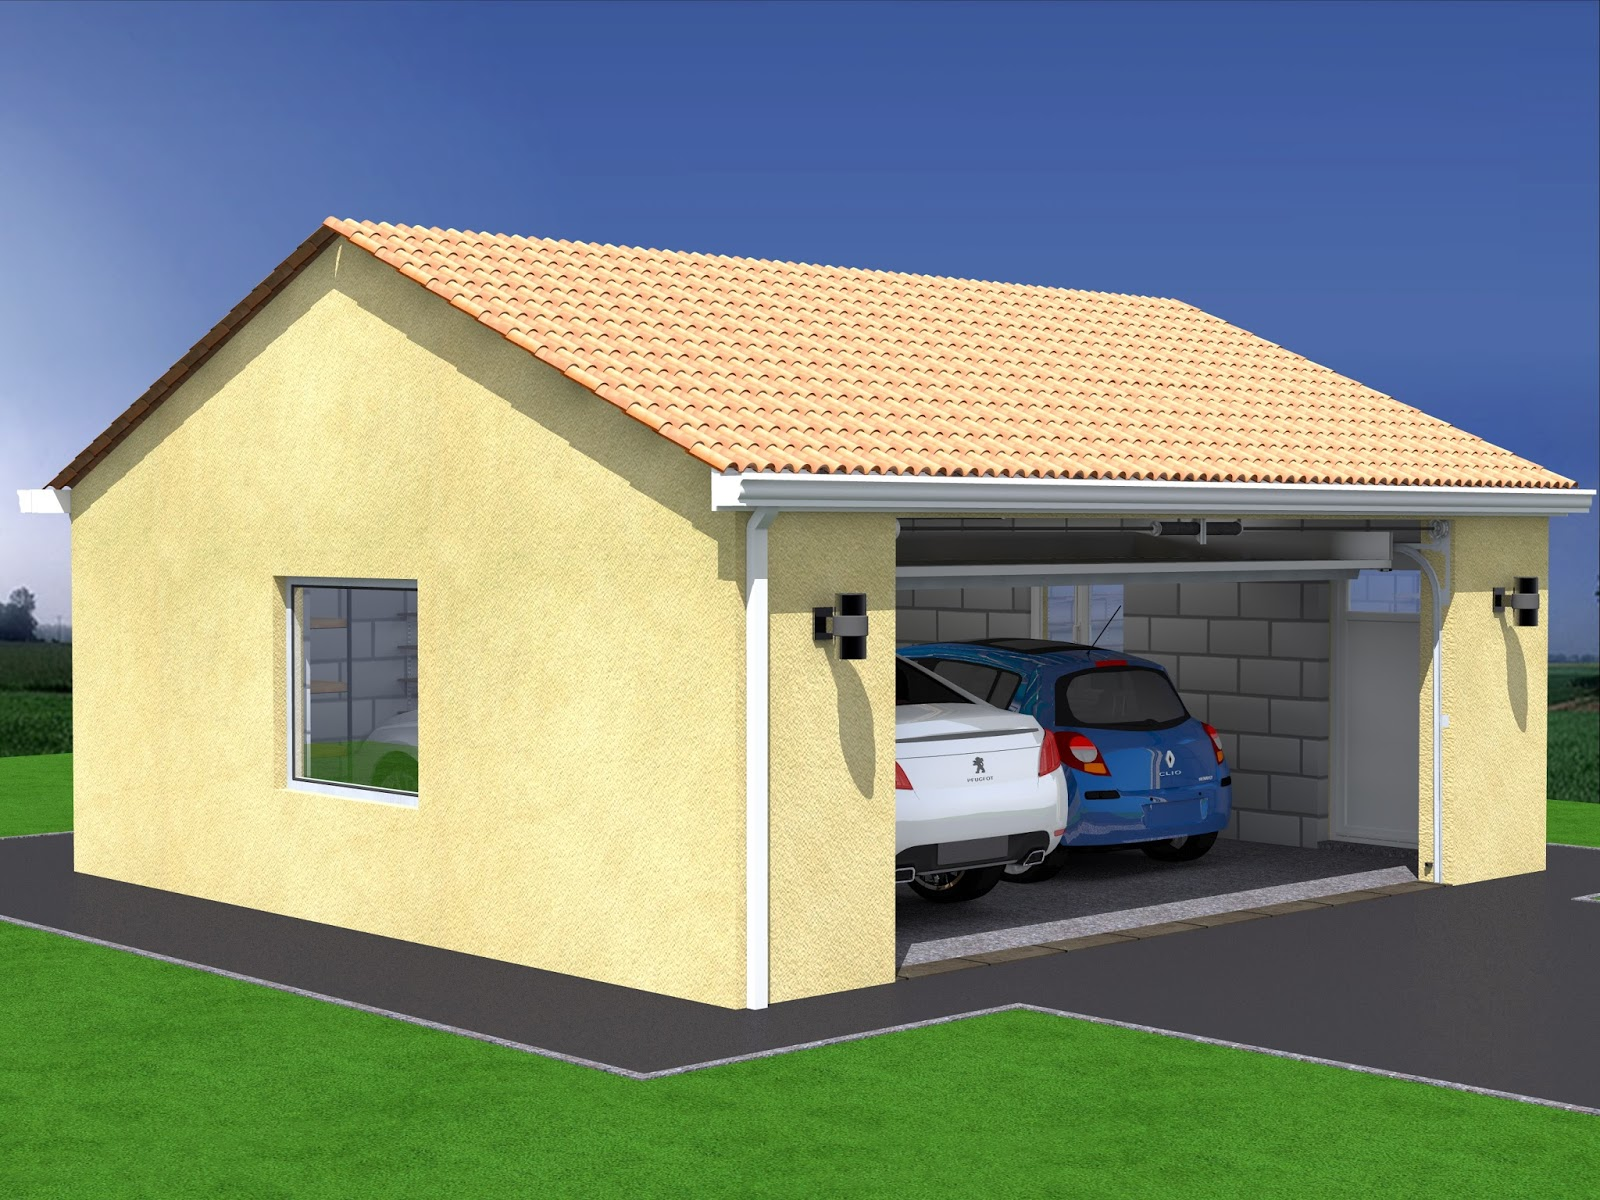 Faire Construire Un Garage Projet De Construction De Garage Double